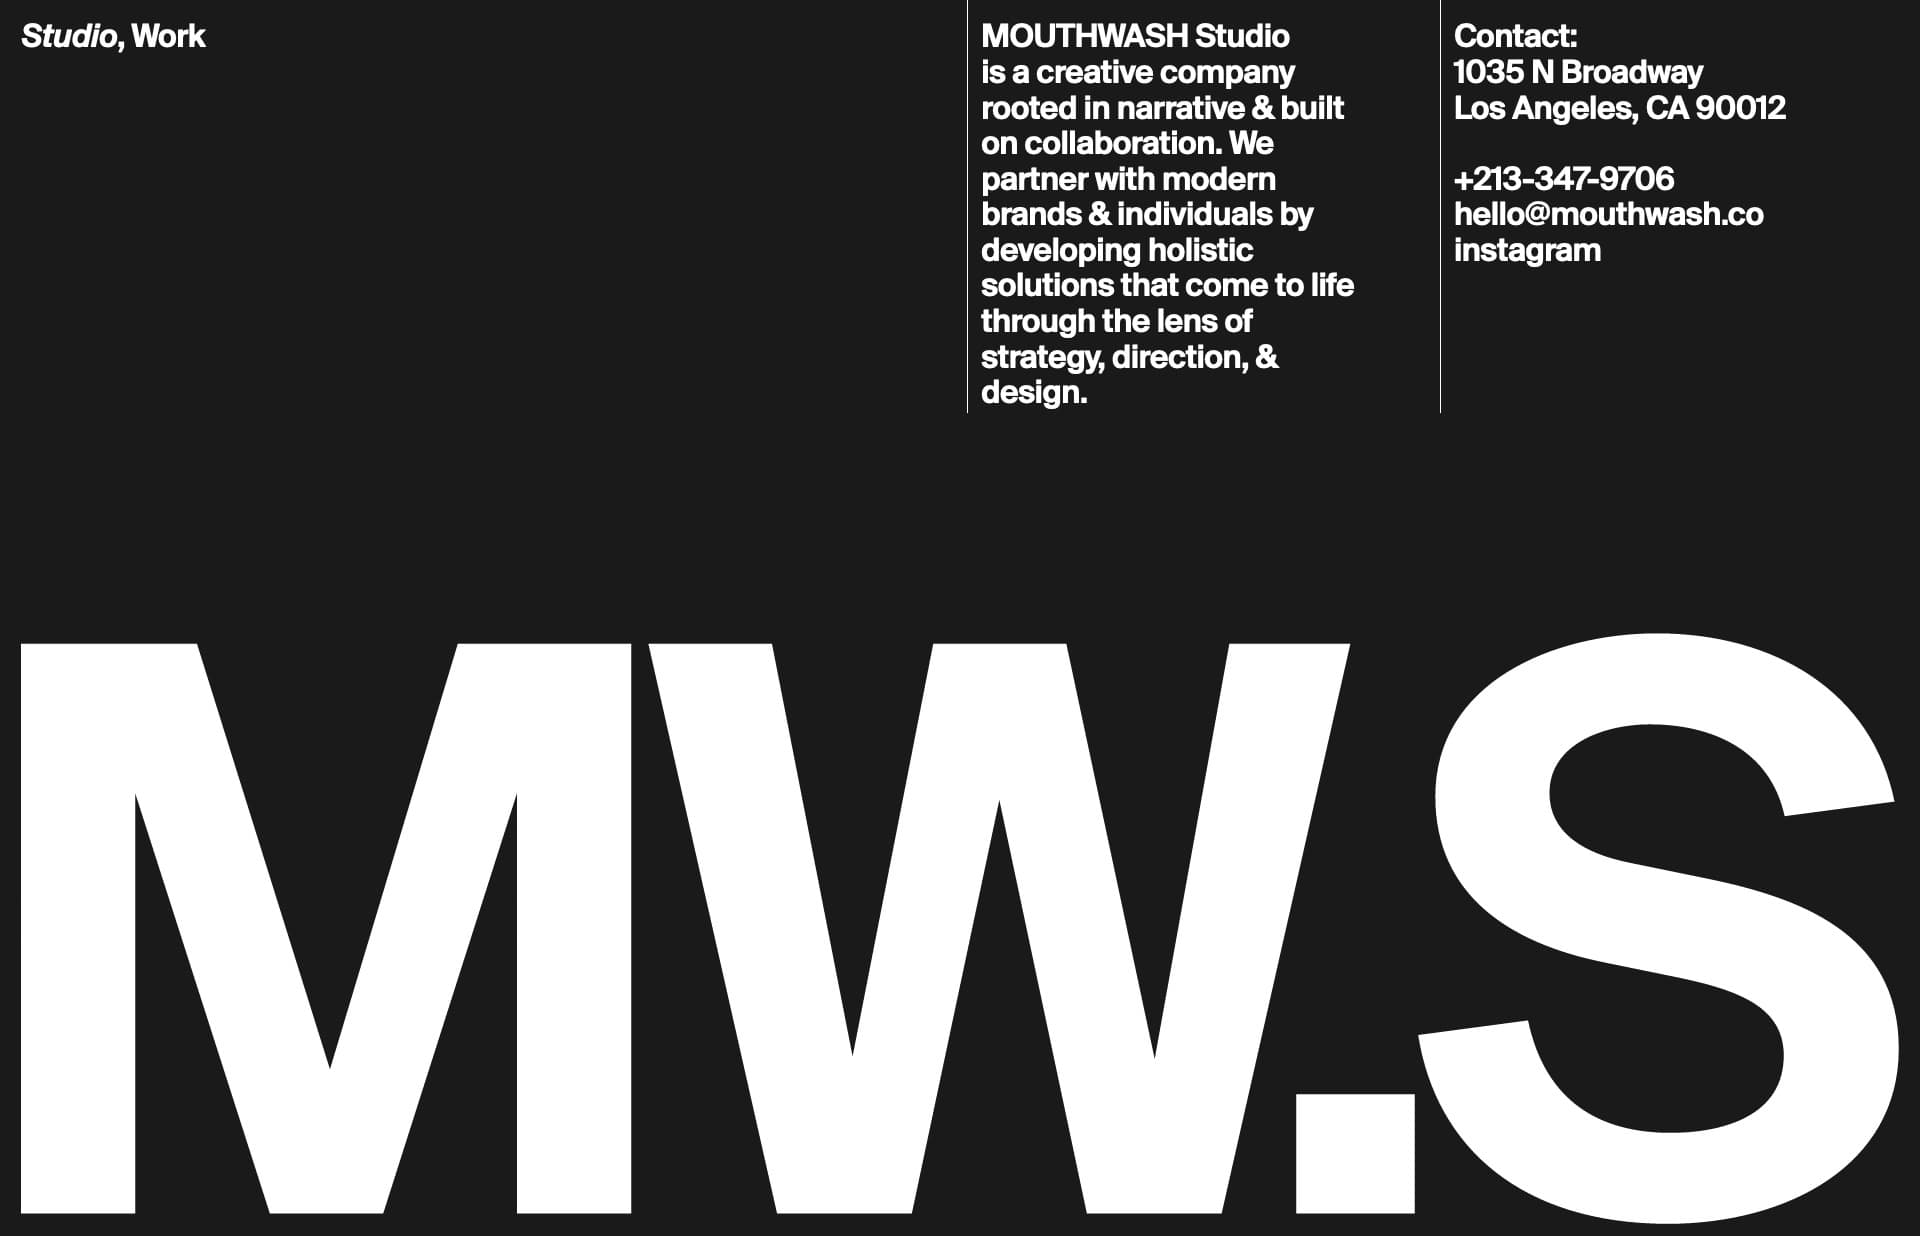 Screenshot of the website Mouthwash Studio, featured on The Gallery, a curated collection of minimal websites